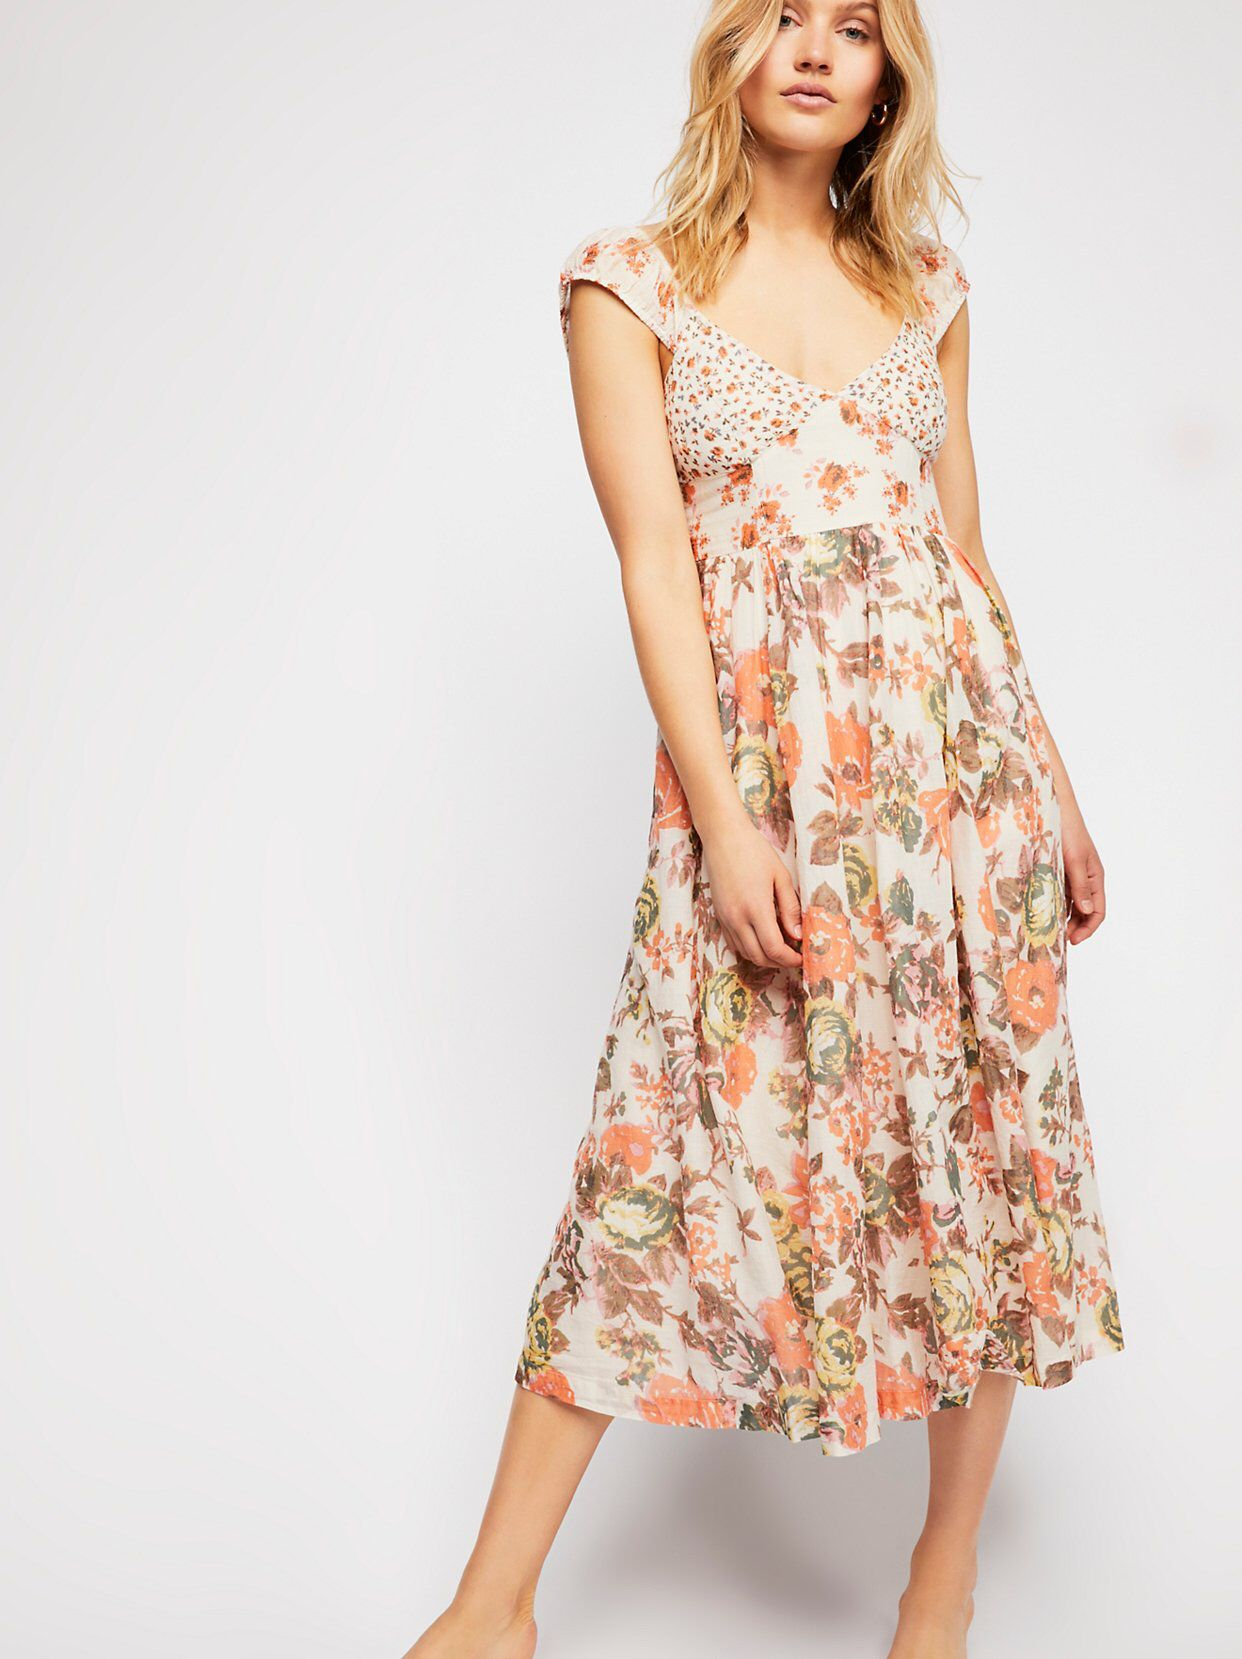 a8e8b9db9750d Love You Midi Dress from Free People!